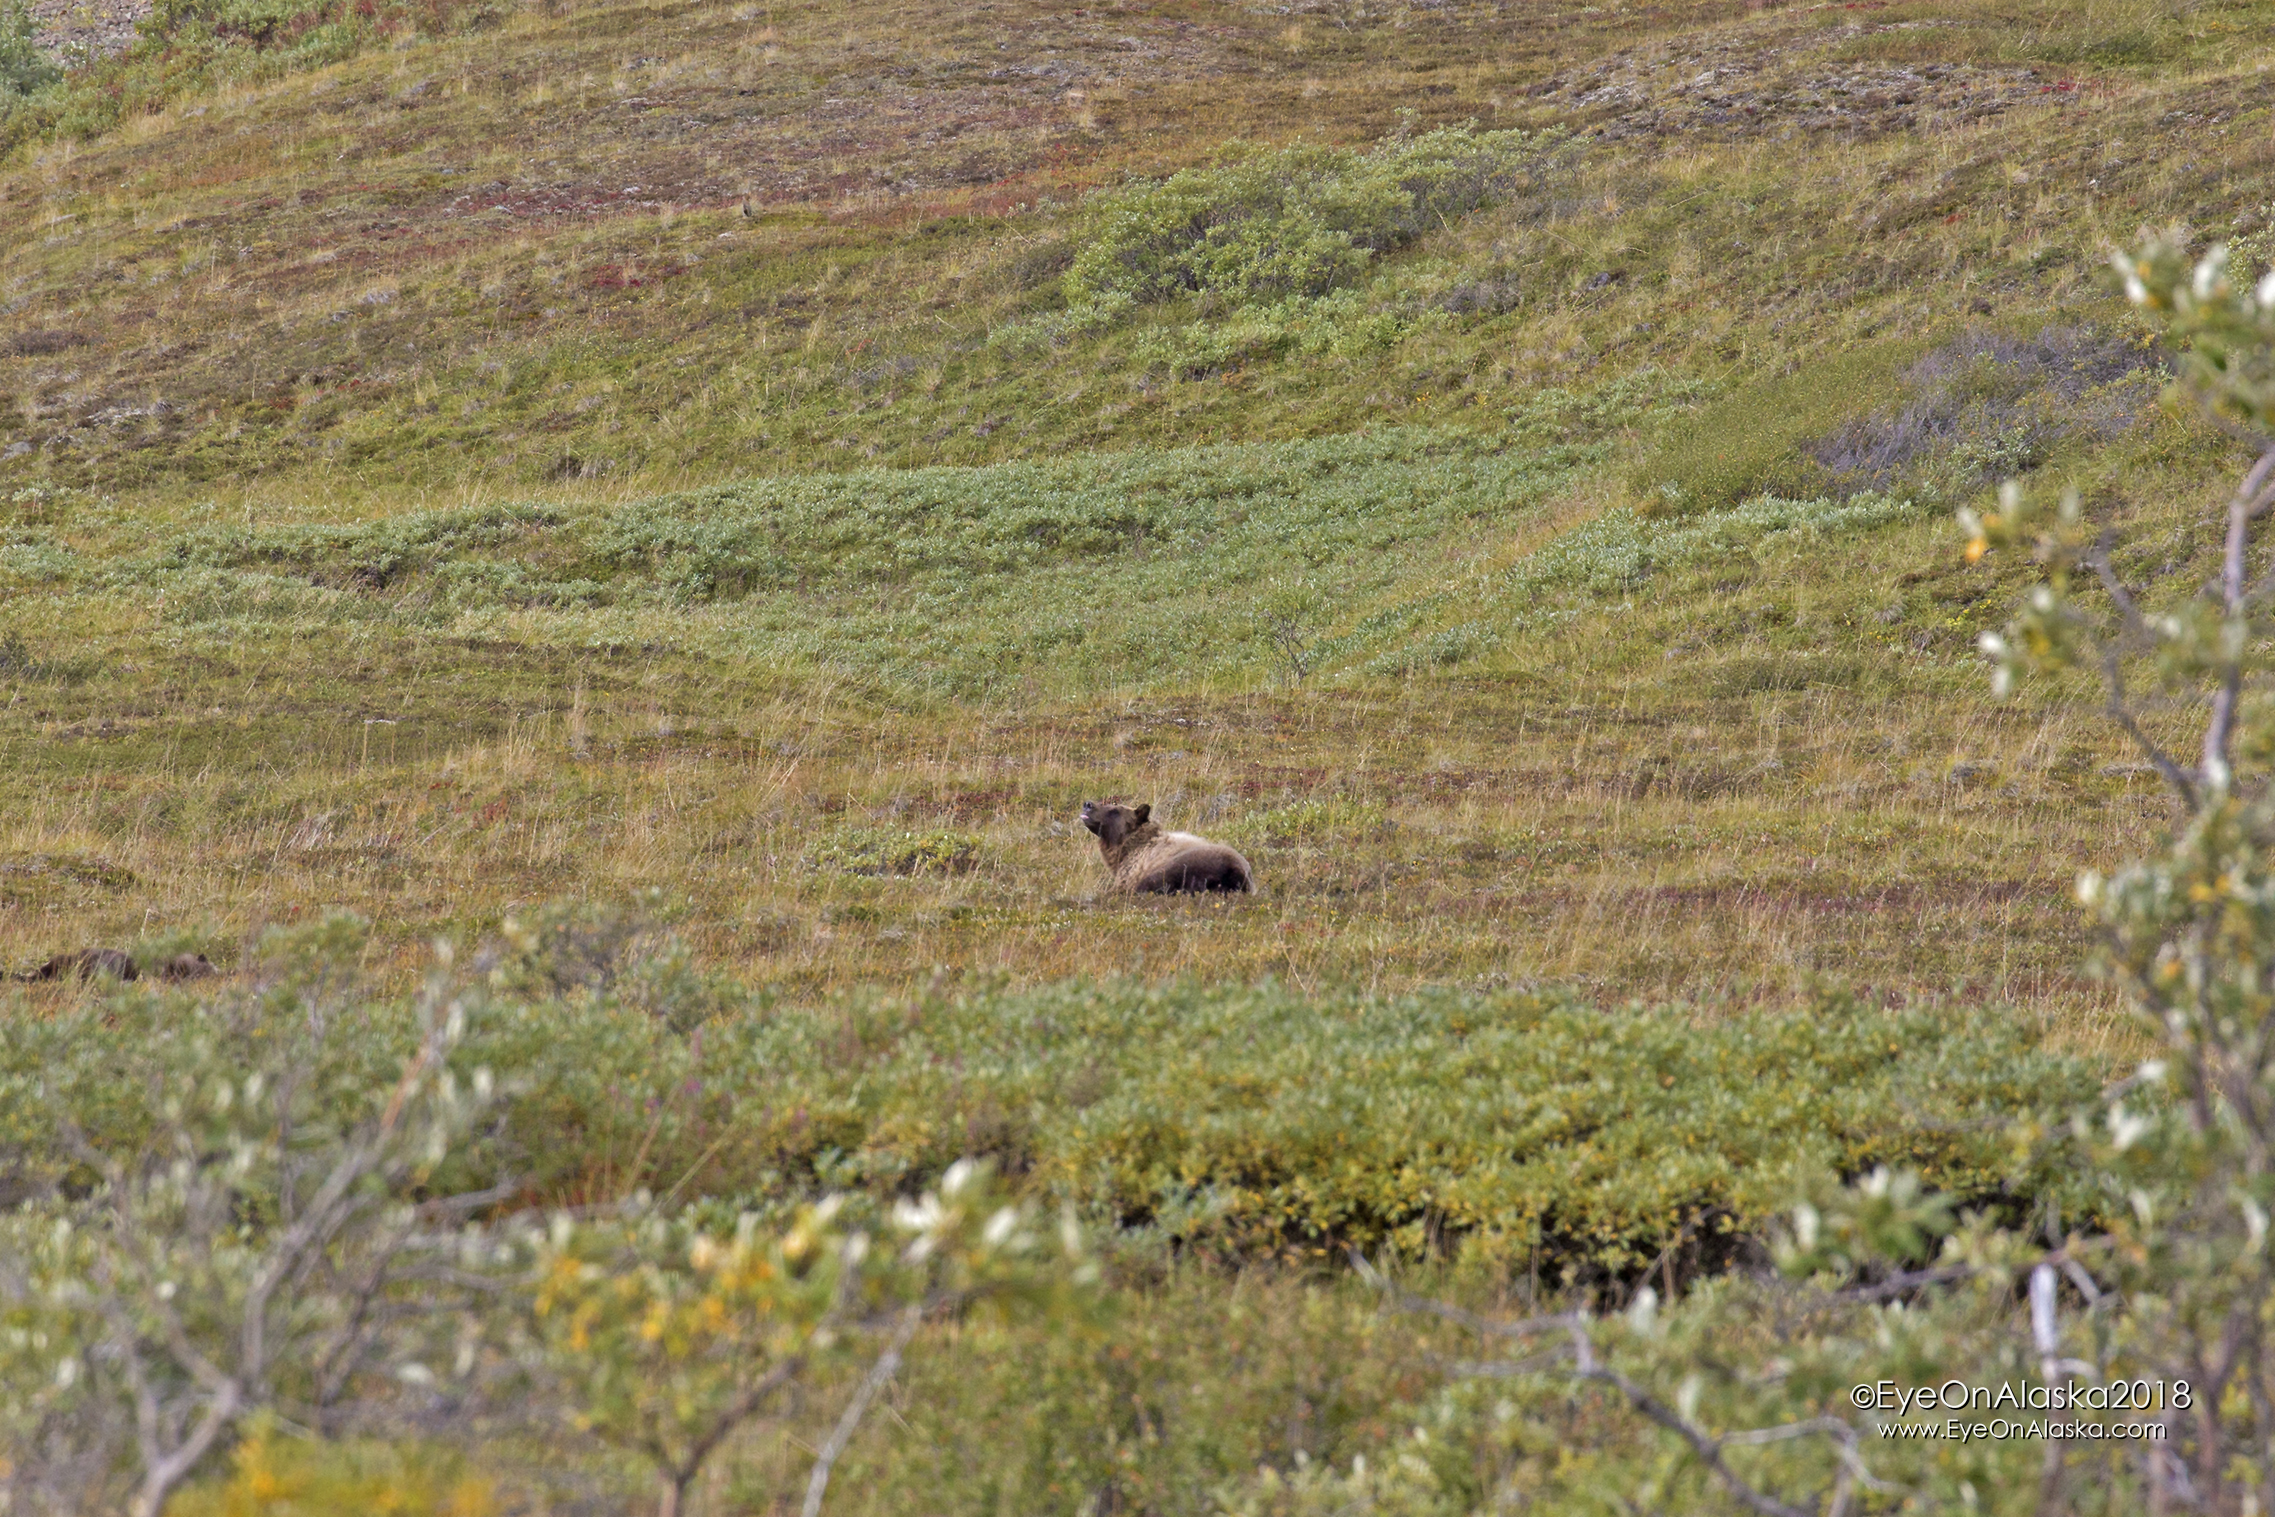 Here we go again.  As we're biking down from the top of Highway Pass to go visit the wolves, this guy pops up out of the berry patch above the road.  I think he caught our scent, but no worries.